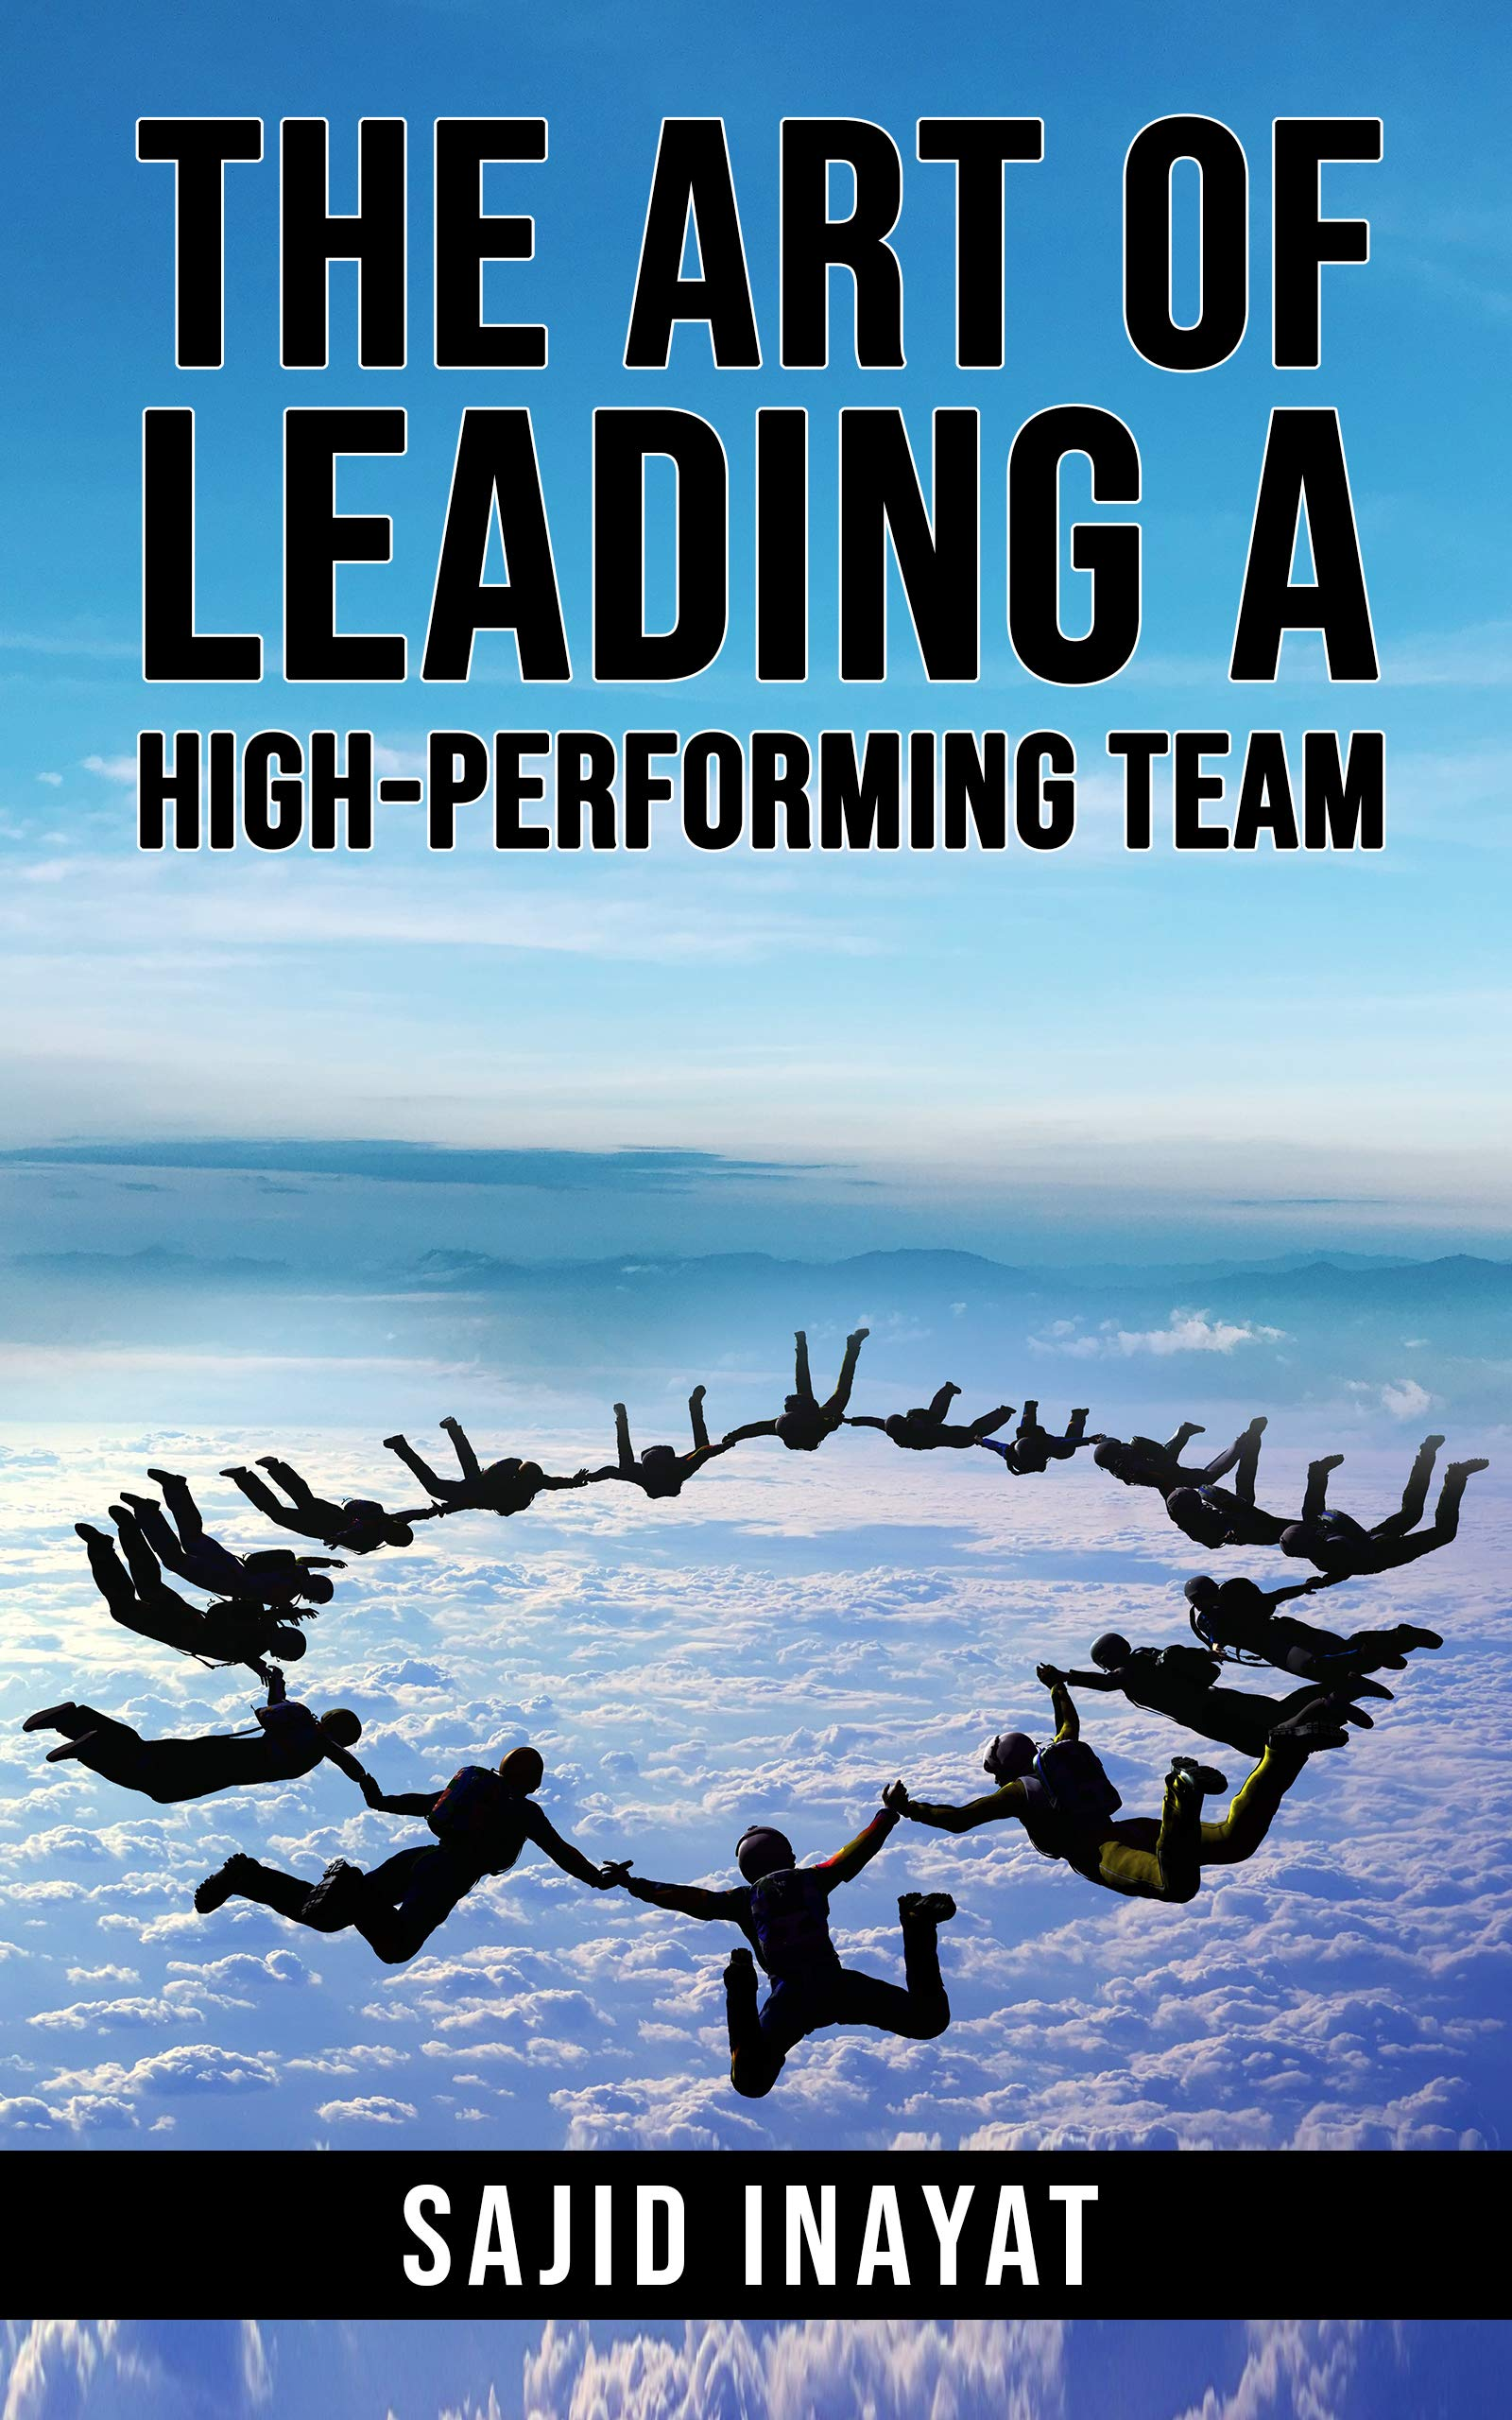 The Art of Leading a High Performing Team